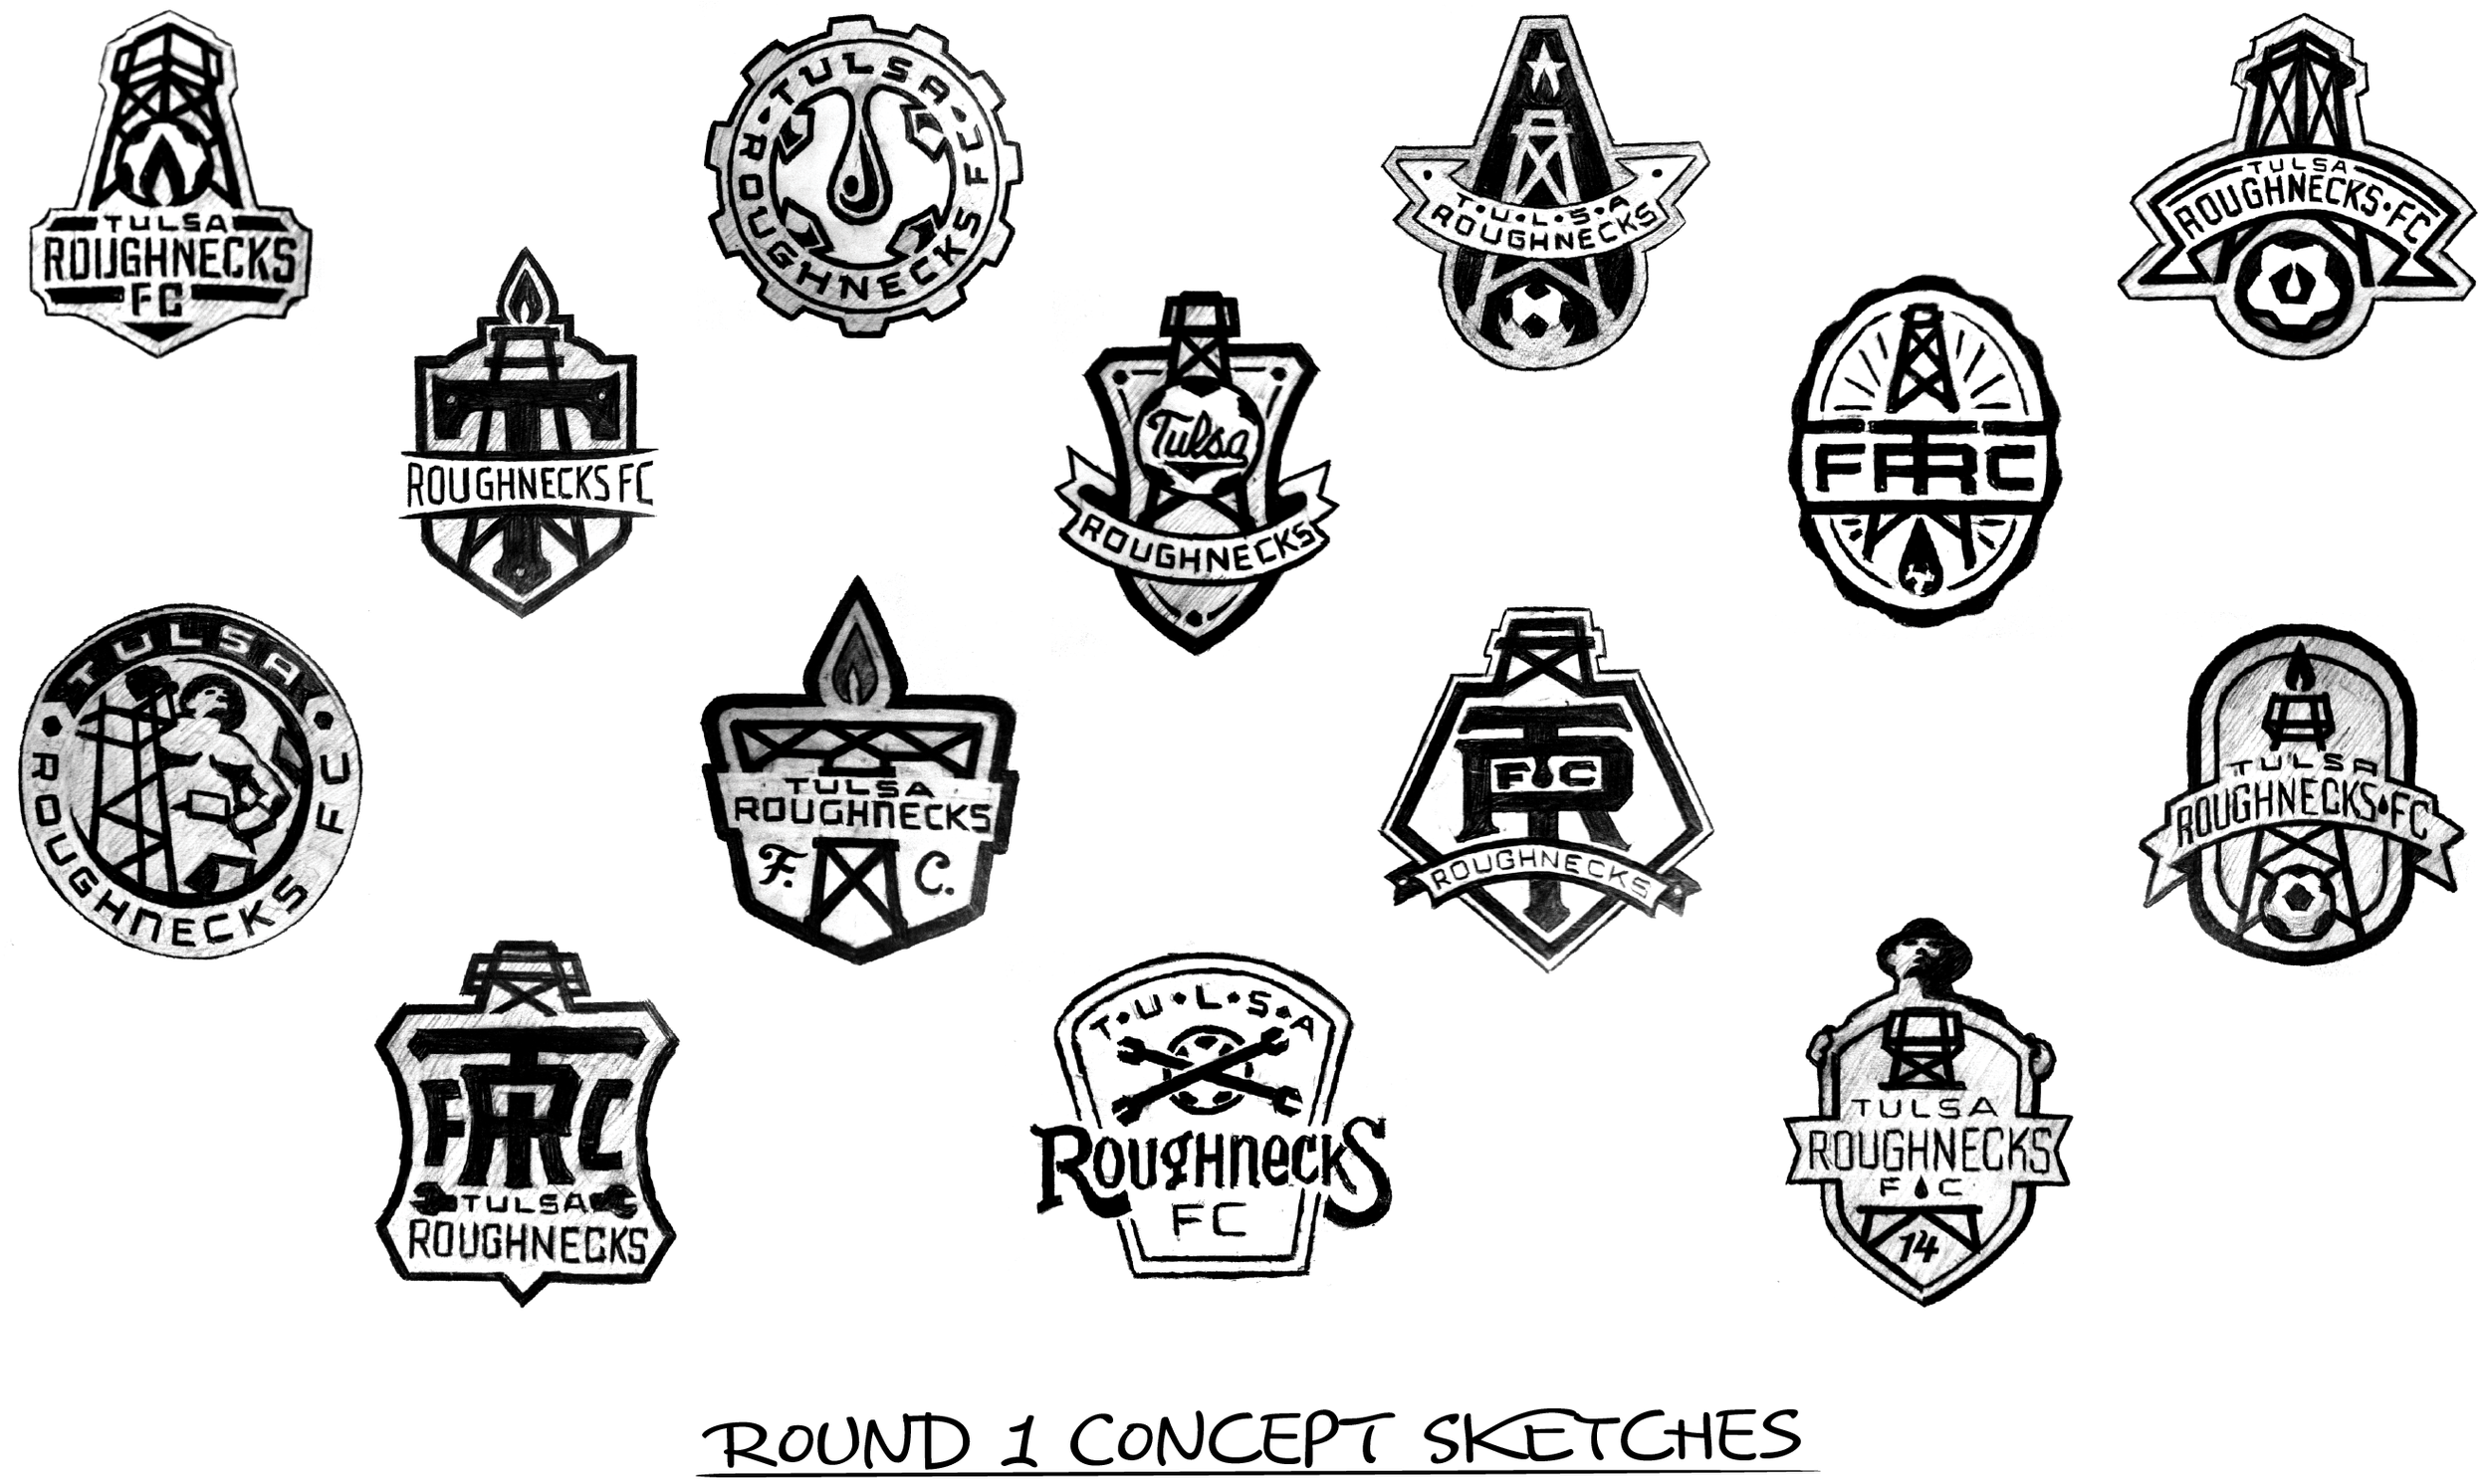 FCTulsa-2-Identity_Sketches-1.png